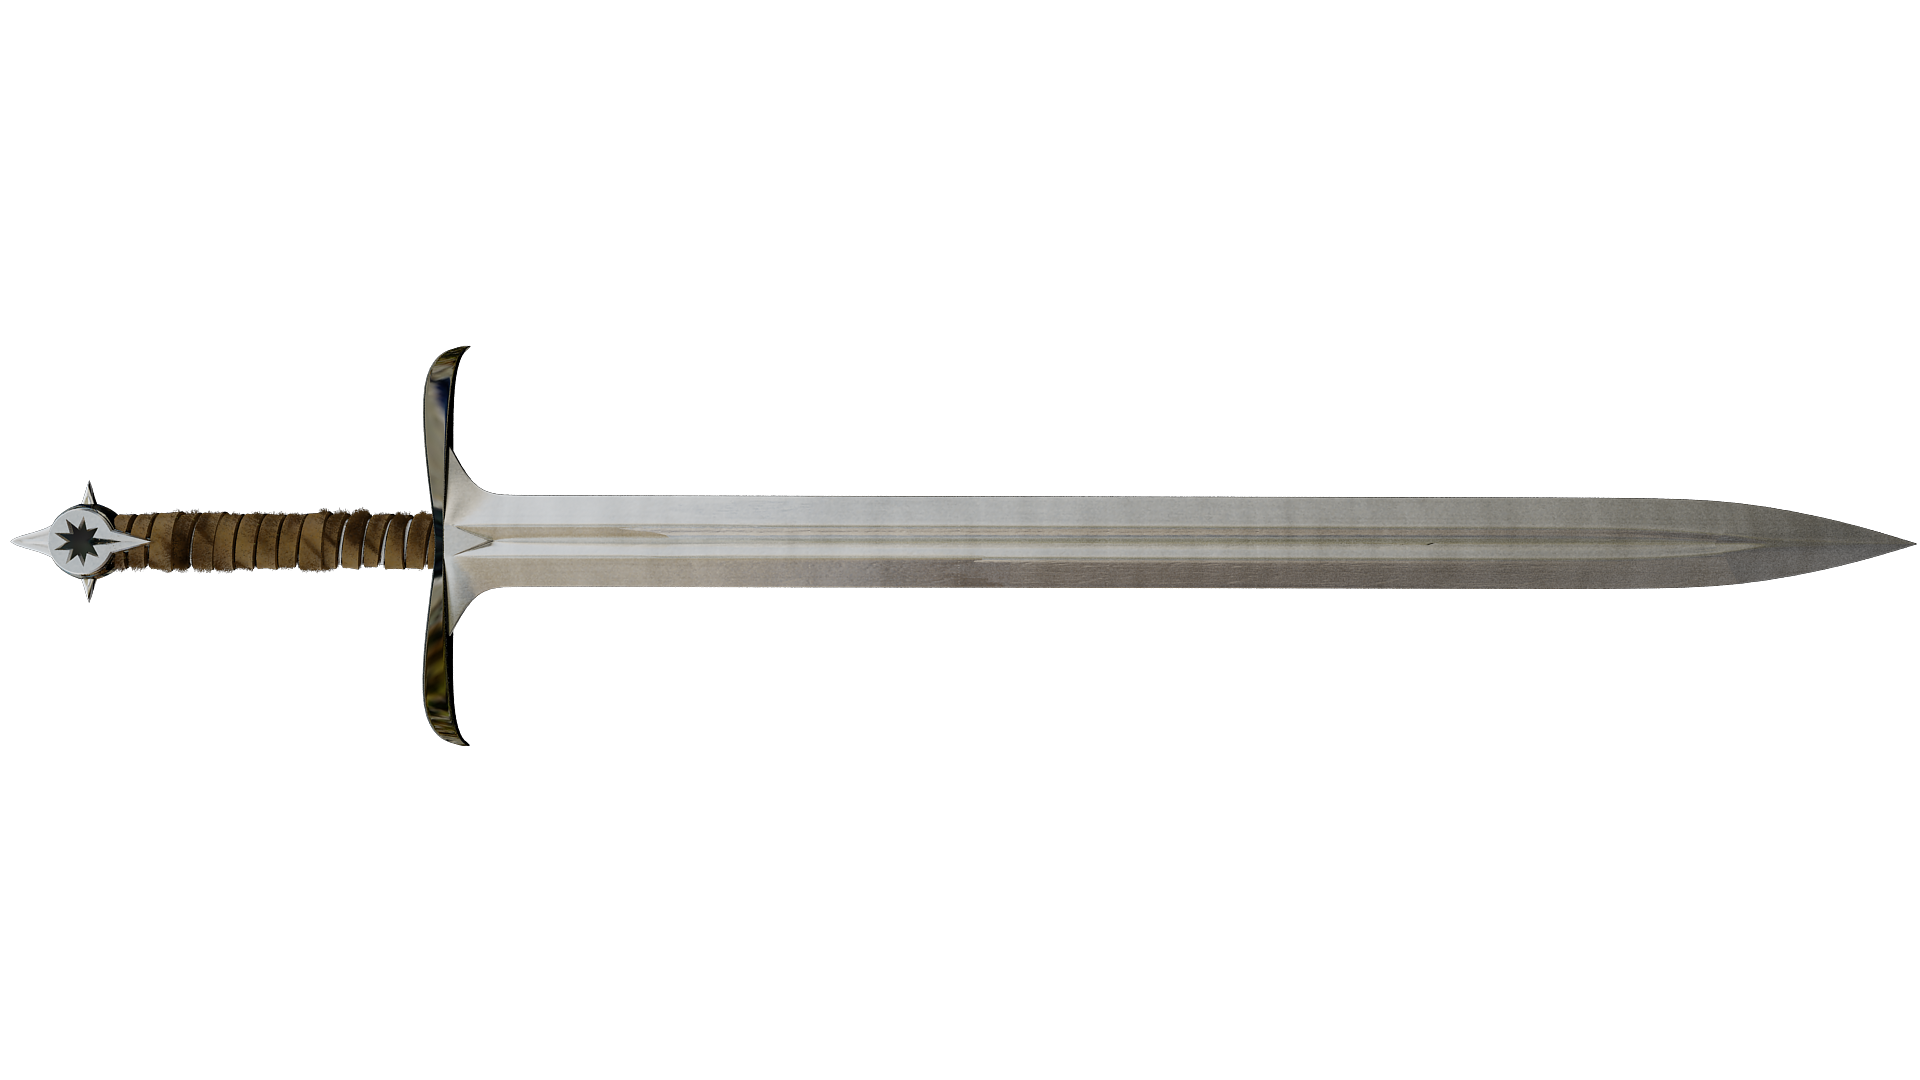 One piece forever Sword-hd-png-sword-png-image-1920